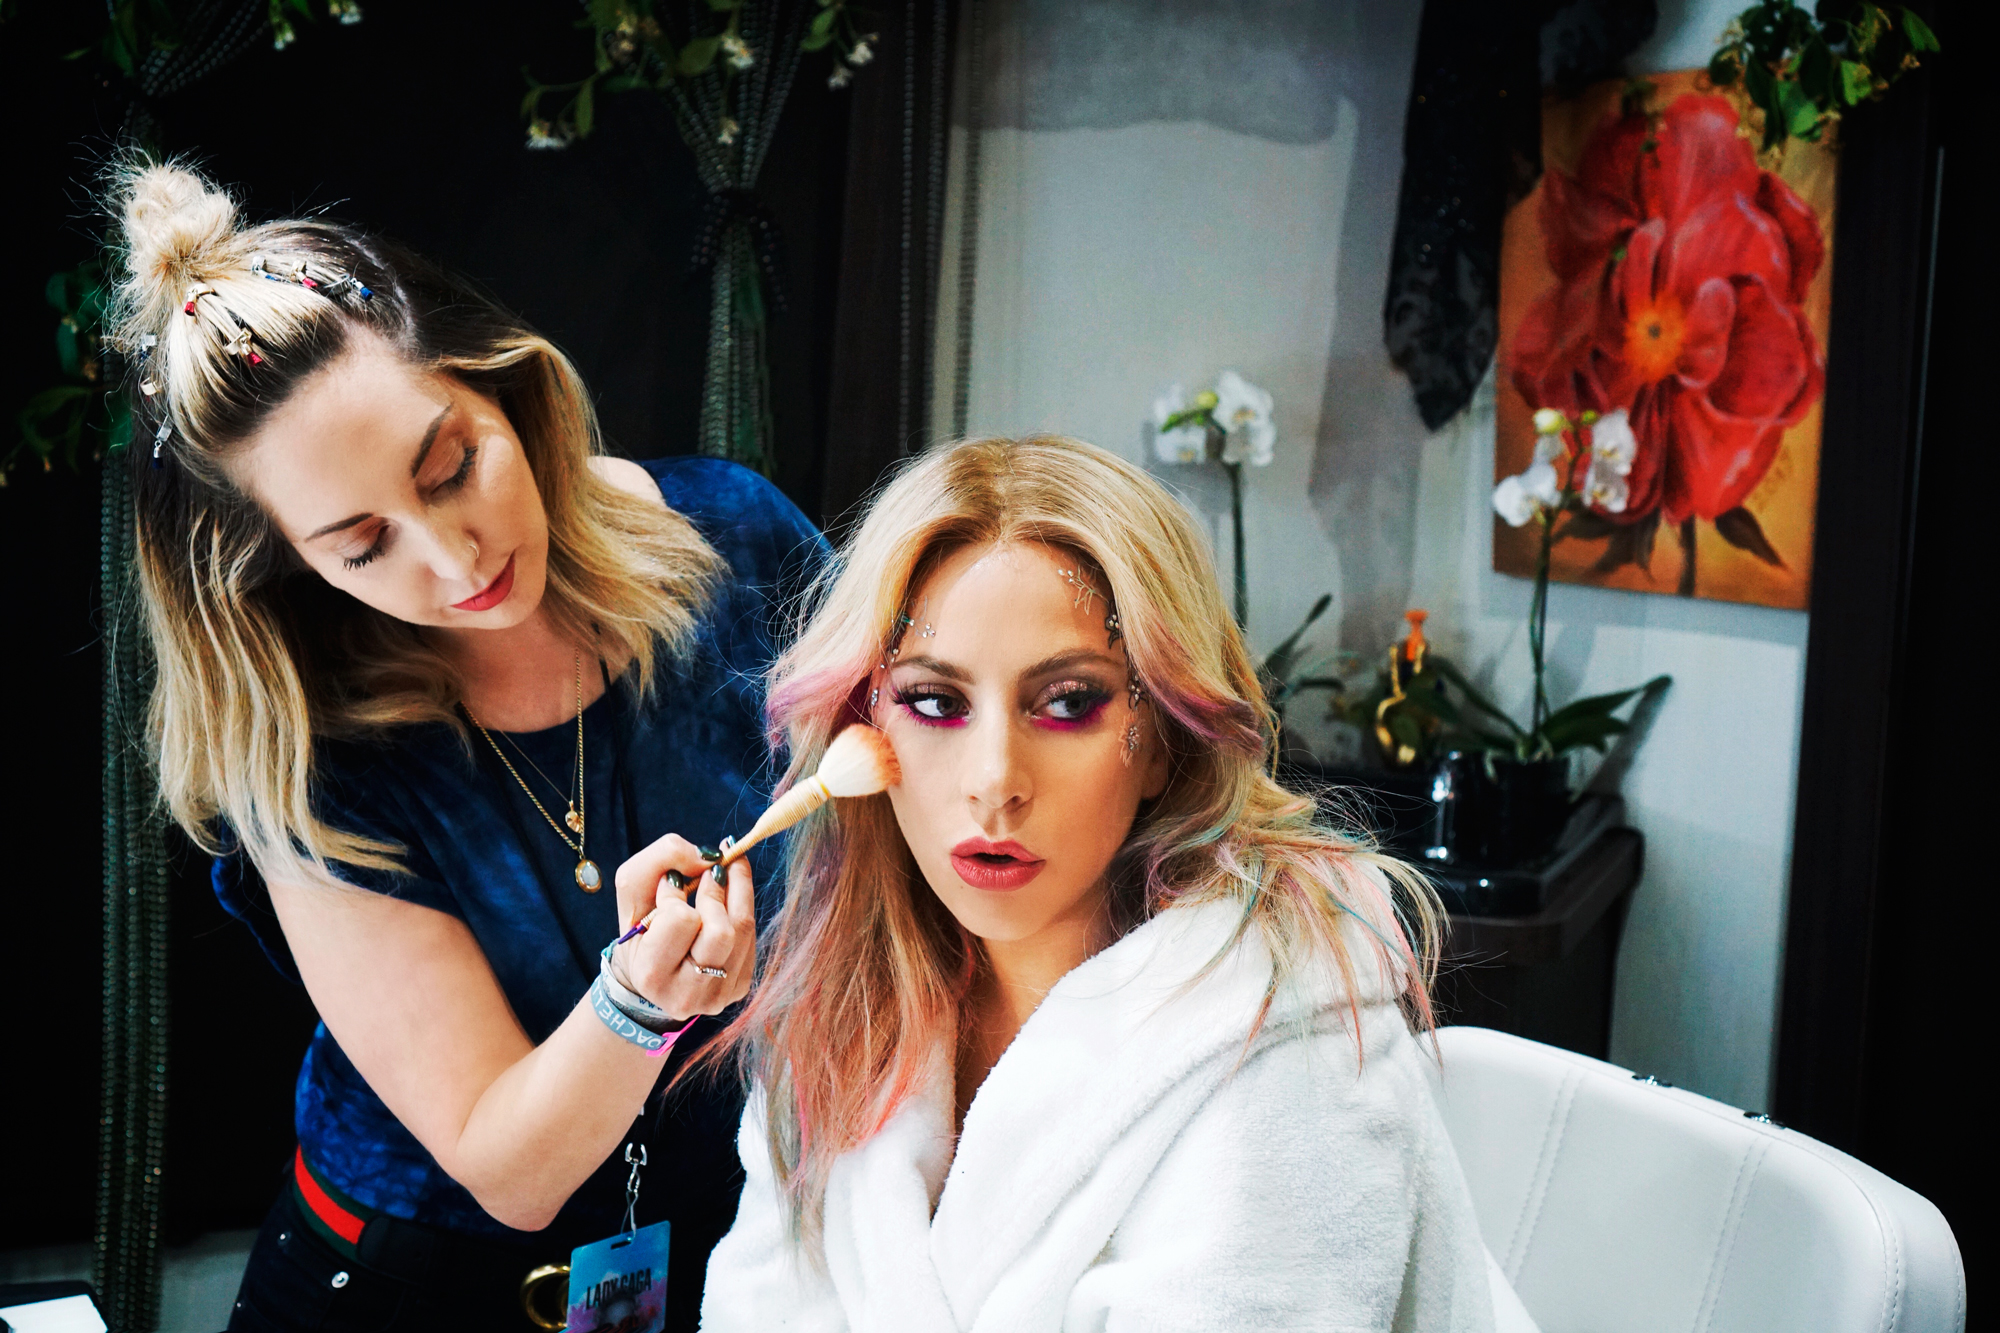 Lady Gaga's Makeup Artist Swears By This Lip Crayon to Stay Smudge-Free on Stage